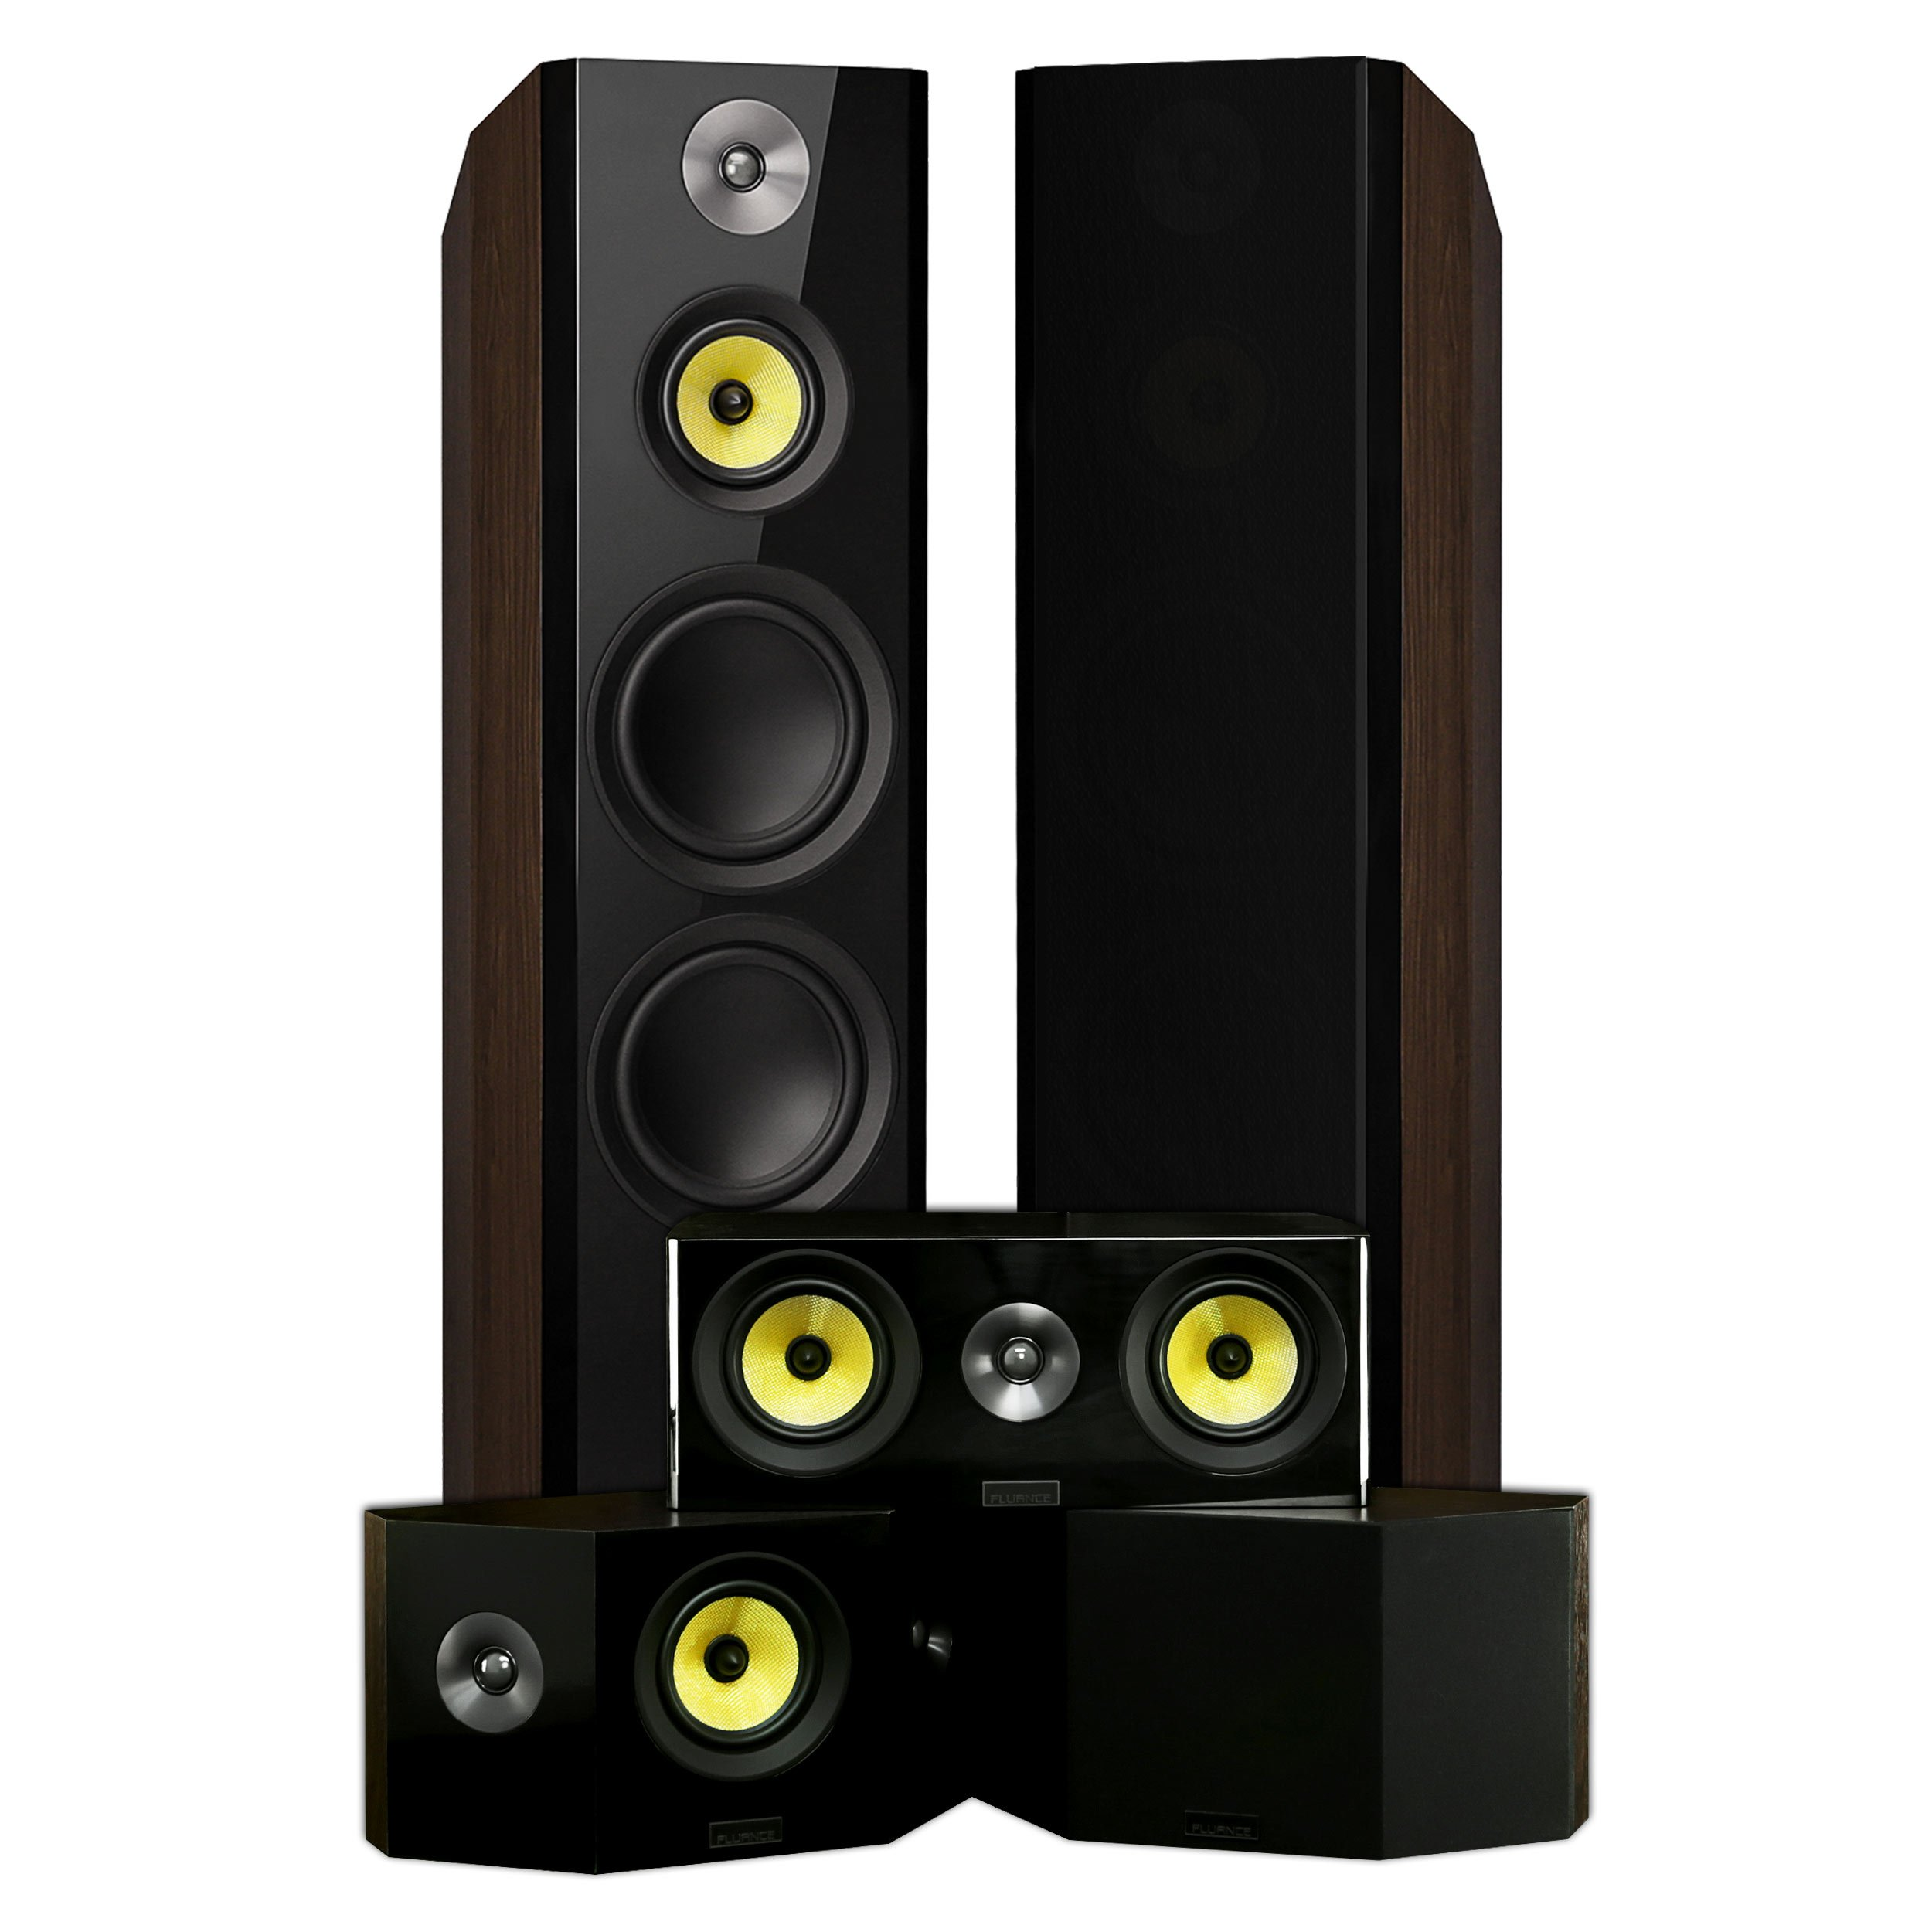 Fluance Signature Series Surround Sound Home Theater 5.0 Channel Speaker System including Three-way Floorstanding Towers, Center Channel, and Bipolar Speakers – Walnut (HF50WB) by Fluance